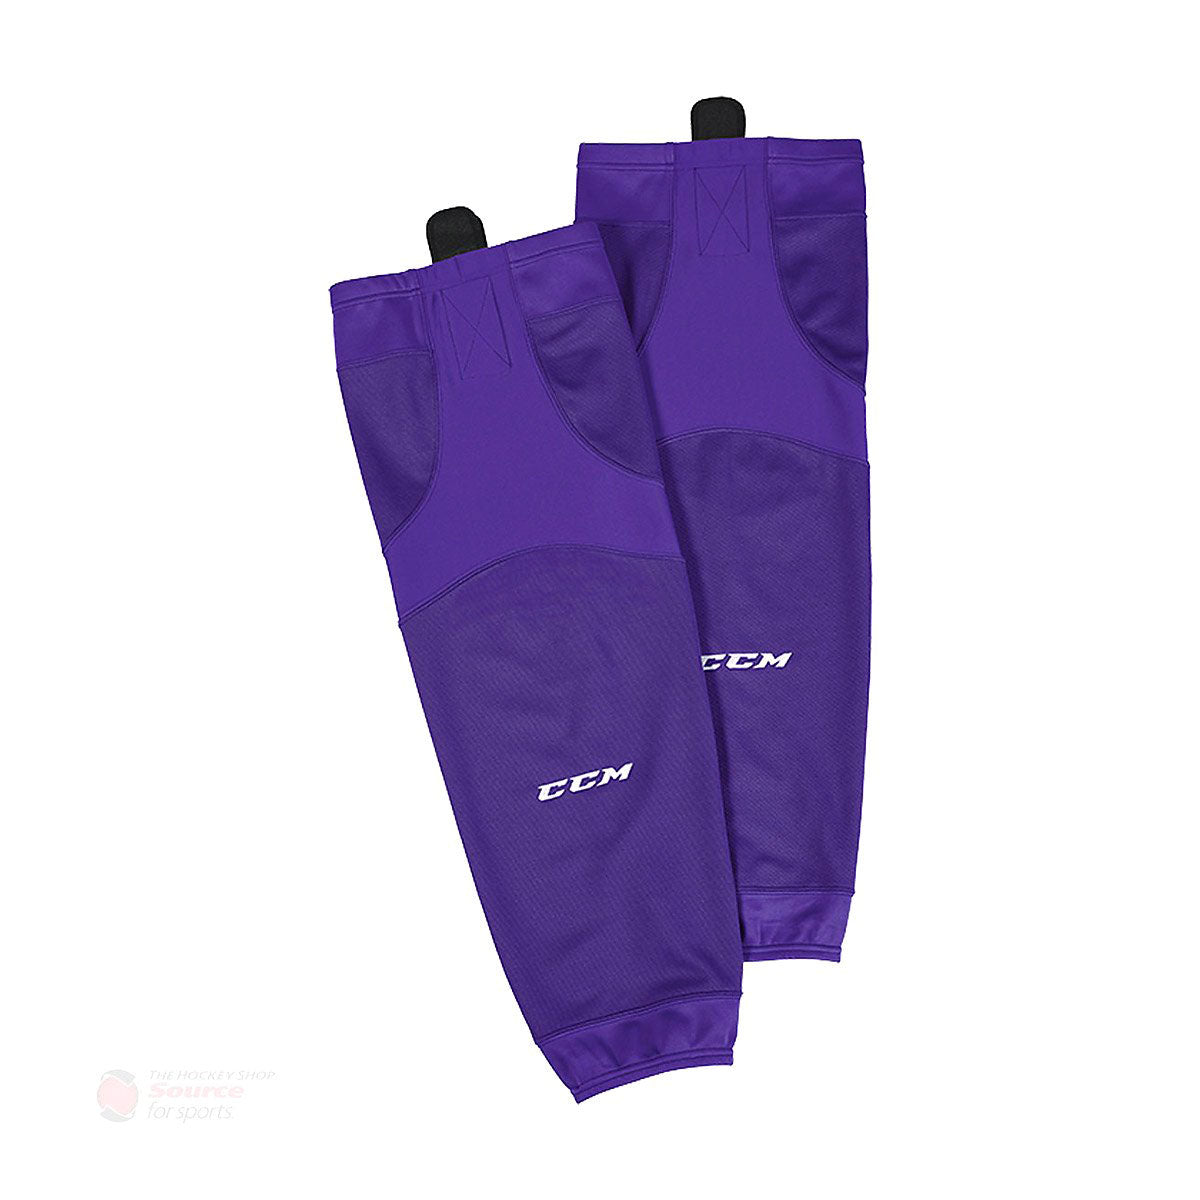 CCM Quicklite 6000 Purple Hockey Socks